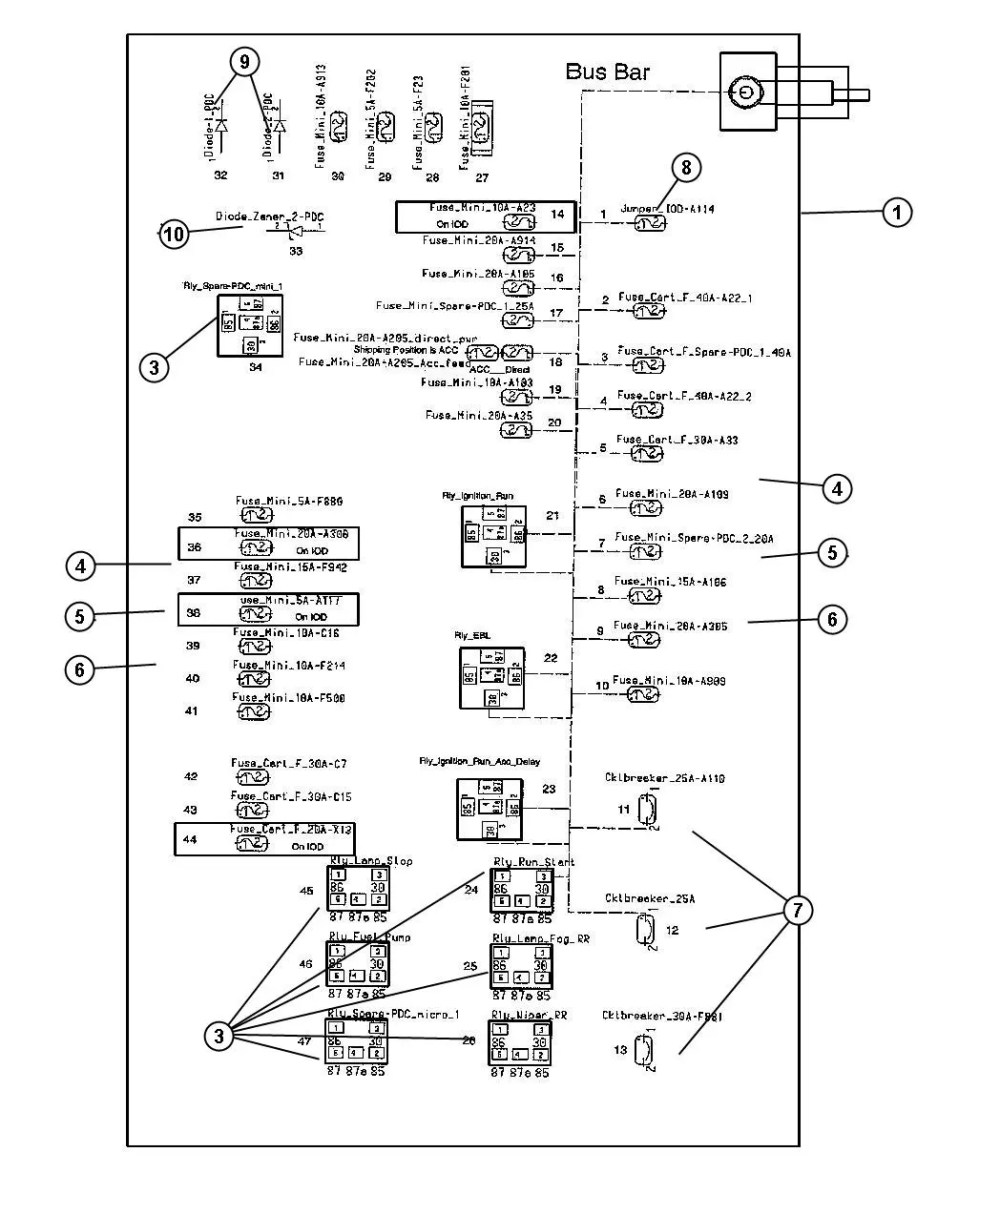 medium resolution of chrysler sebring fuse box diagram on chrysler 300 2007 fuel pump 1999 chrysler 300m interior fuse box diagram 1999 chrysler 300m fuse diagram